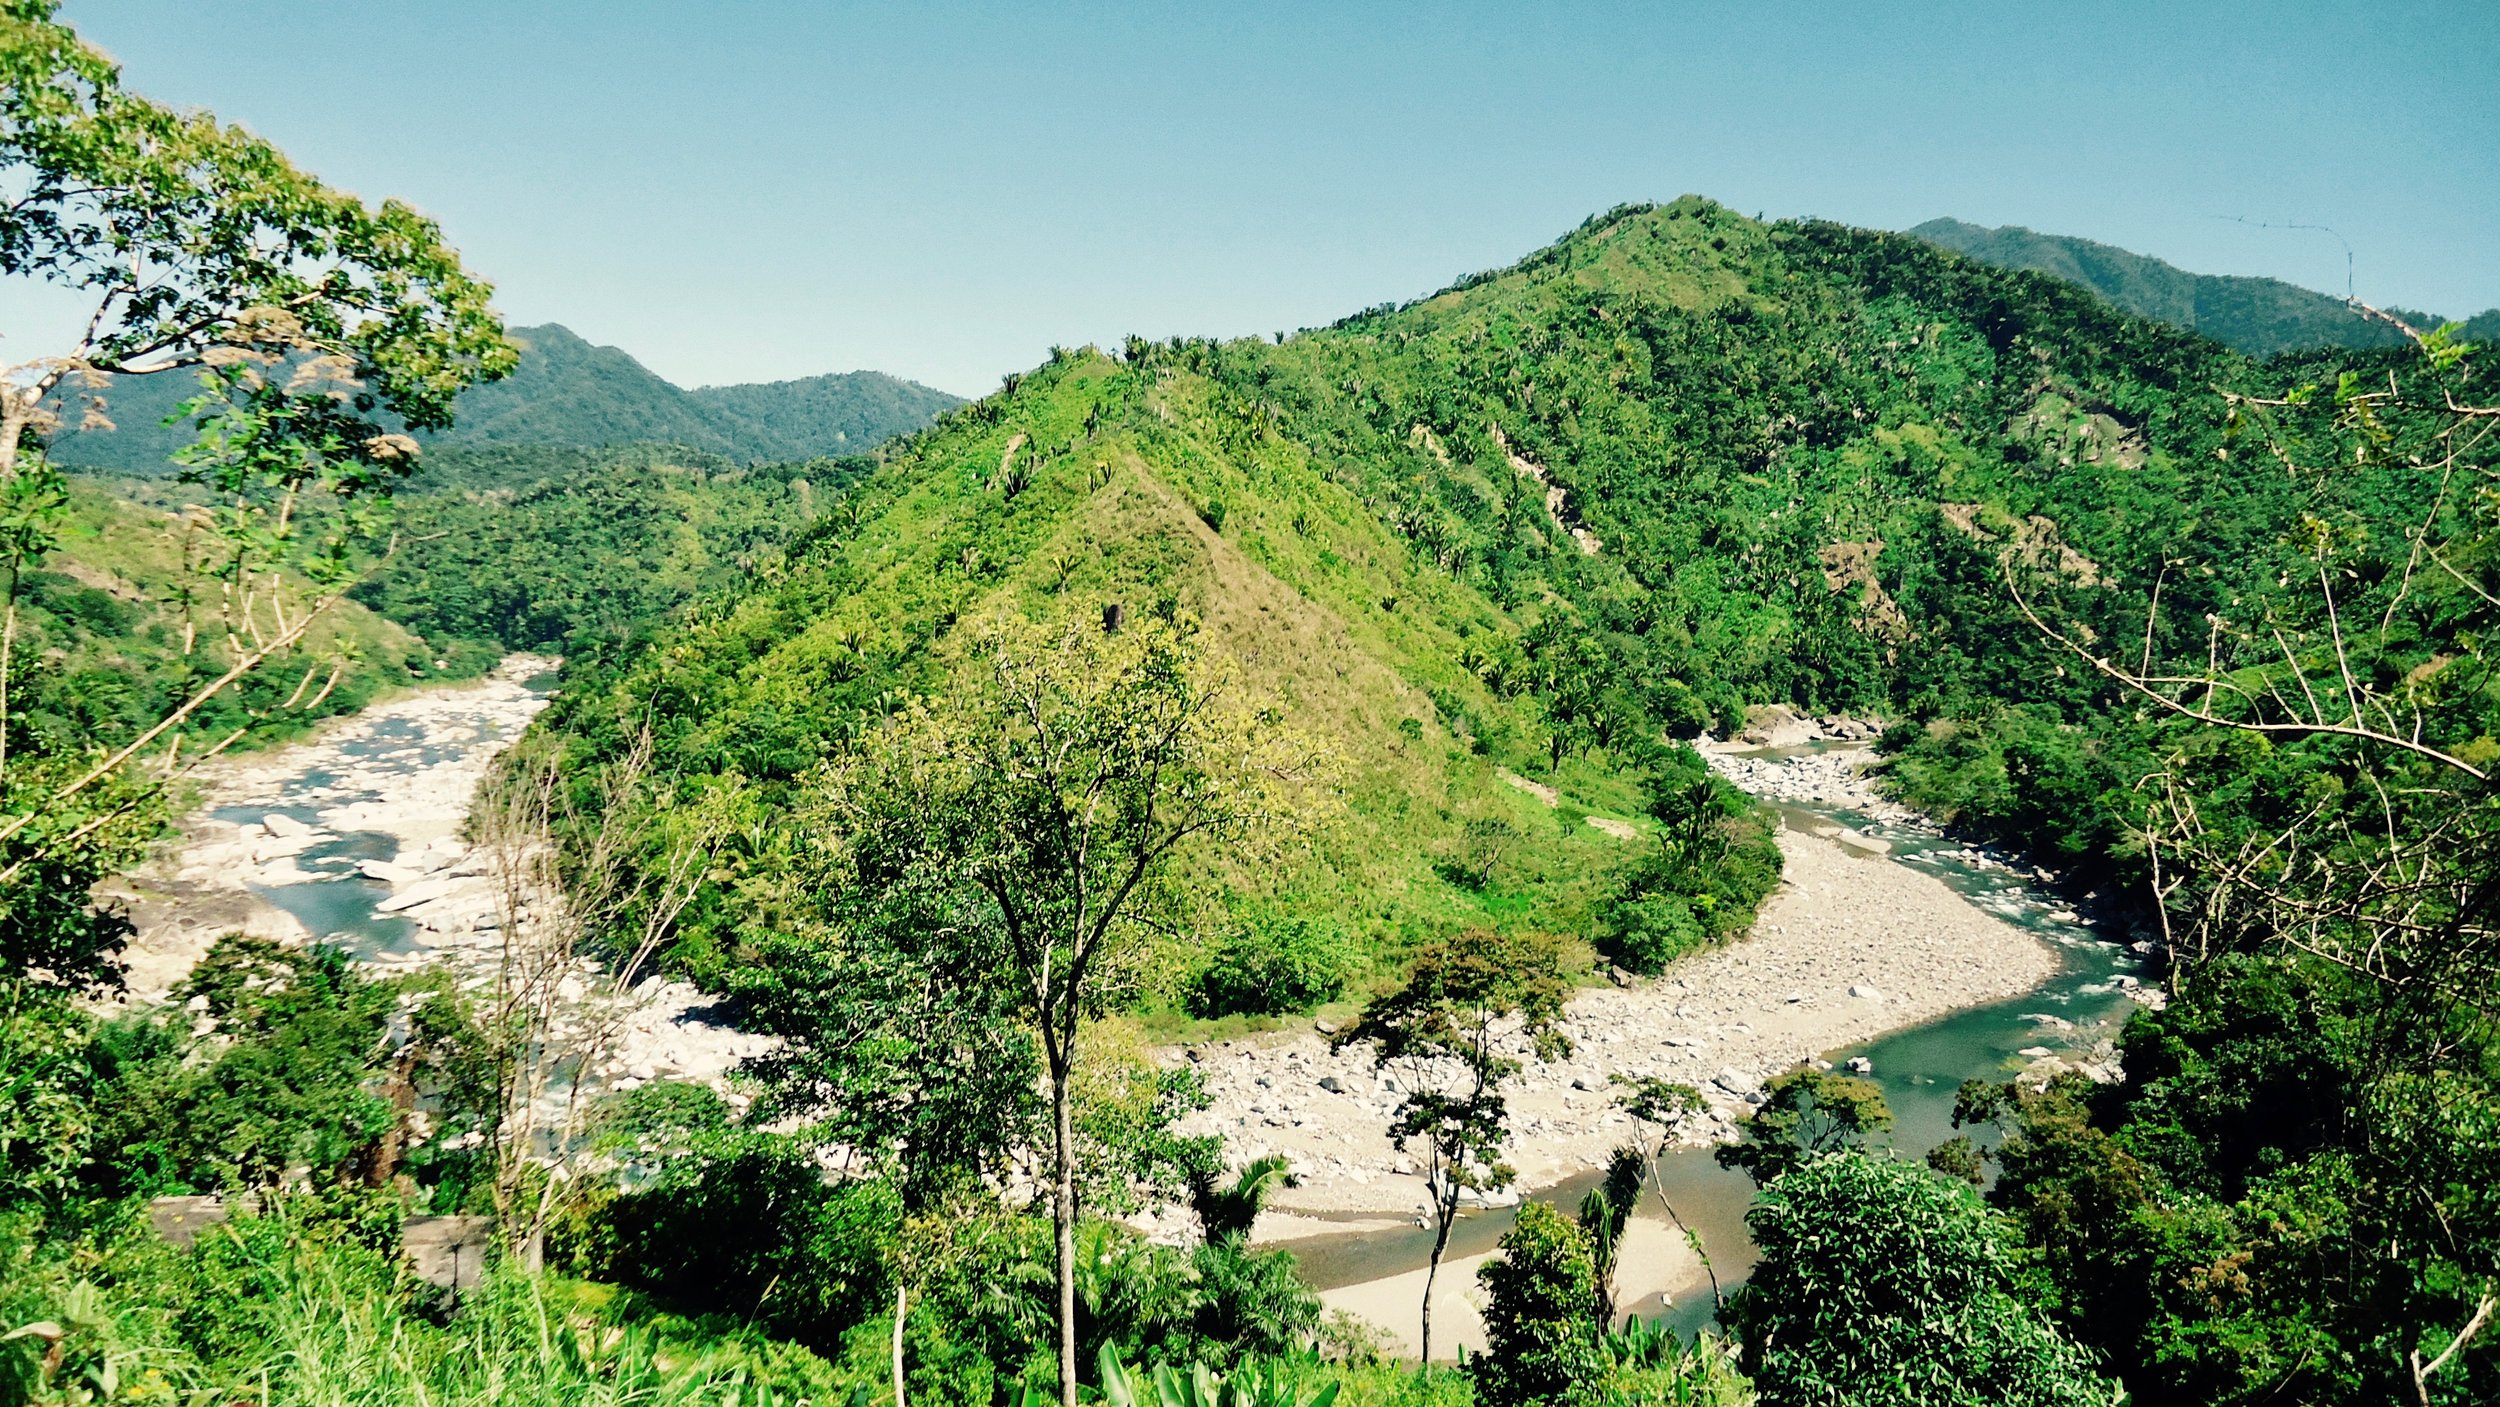 The Valley of the Rio Cangrejal where Las Cascadas Lodge is located